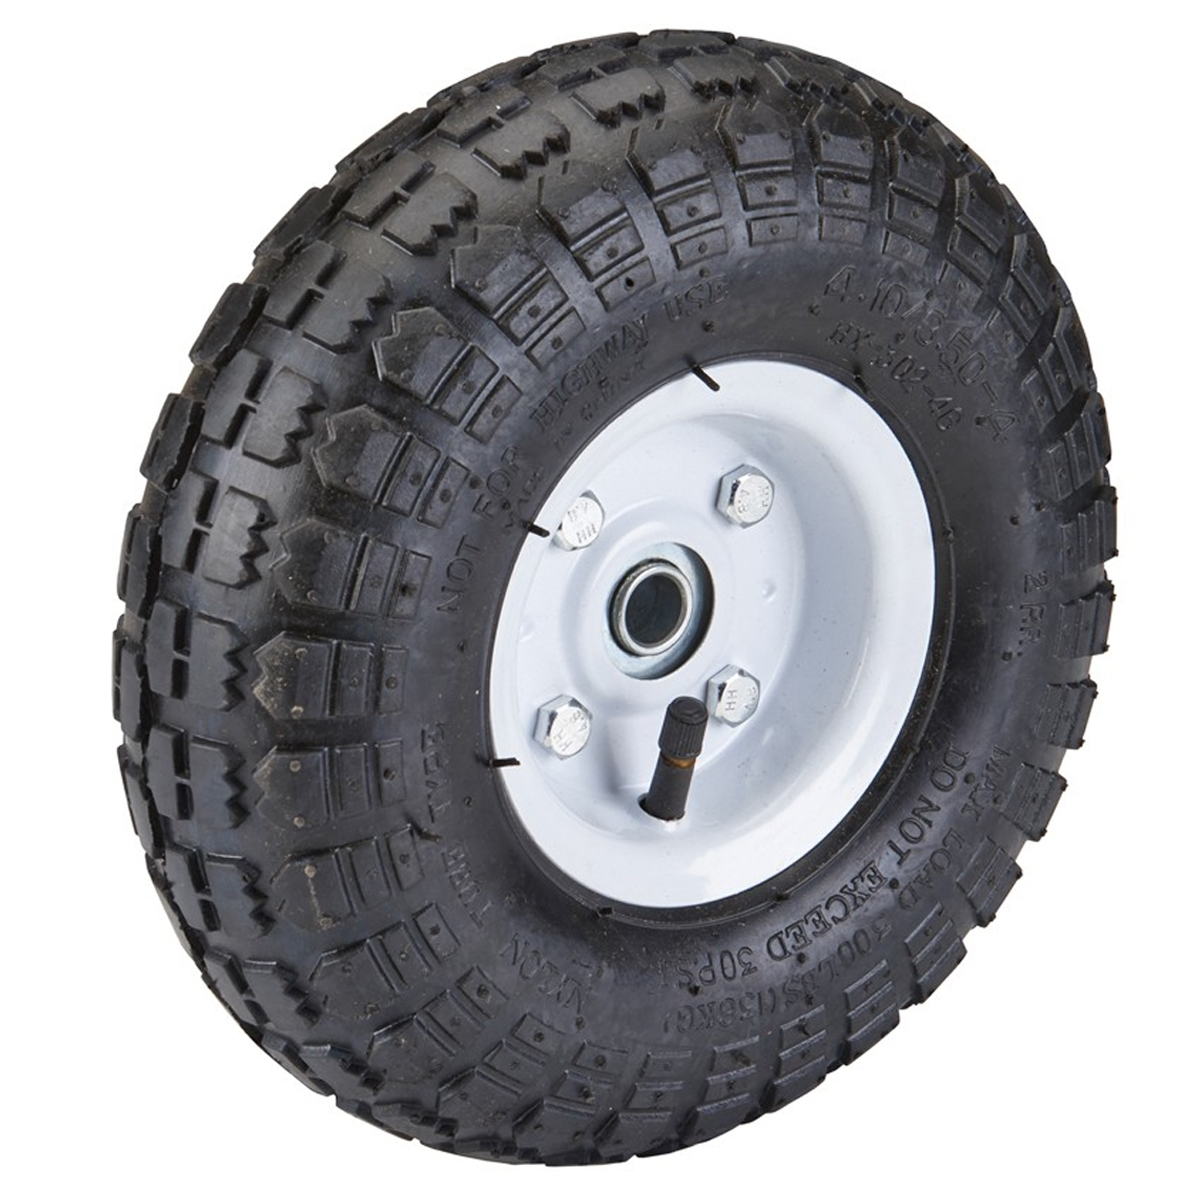 Harbor Freight Utility Cart >> 10 in. Pneumatic Tire with White Hub